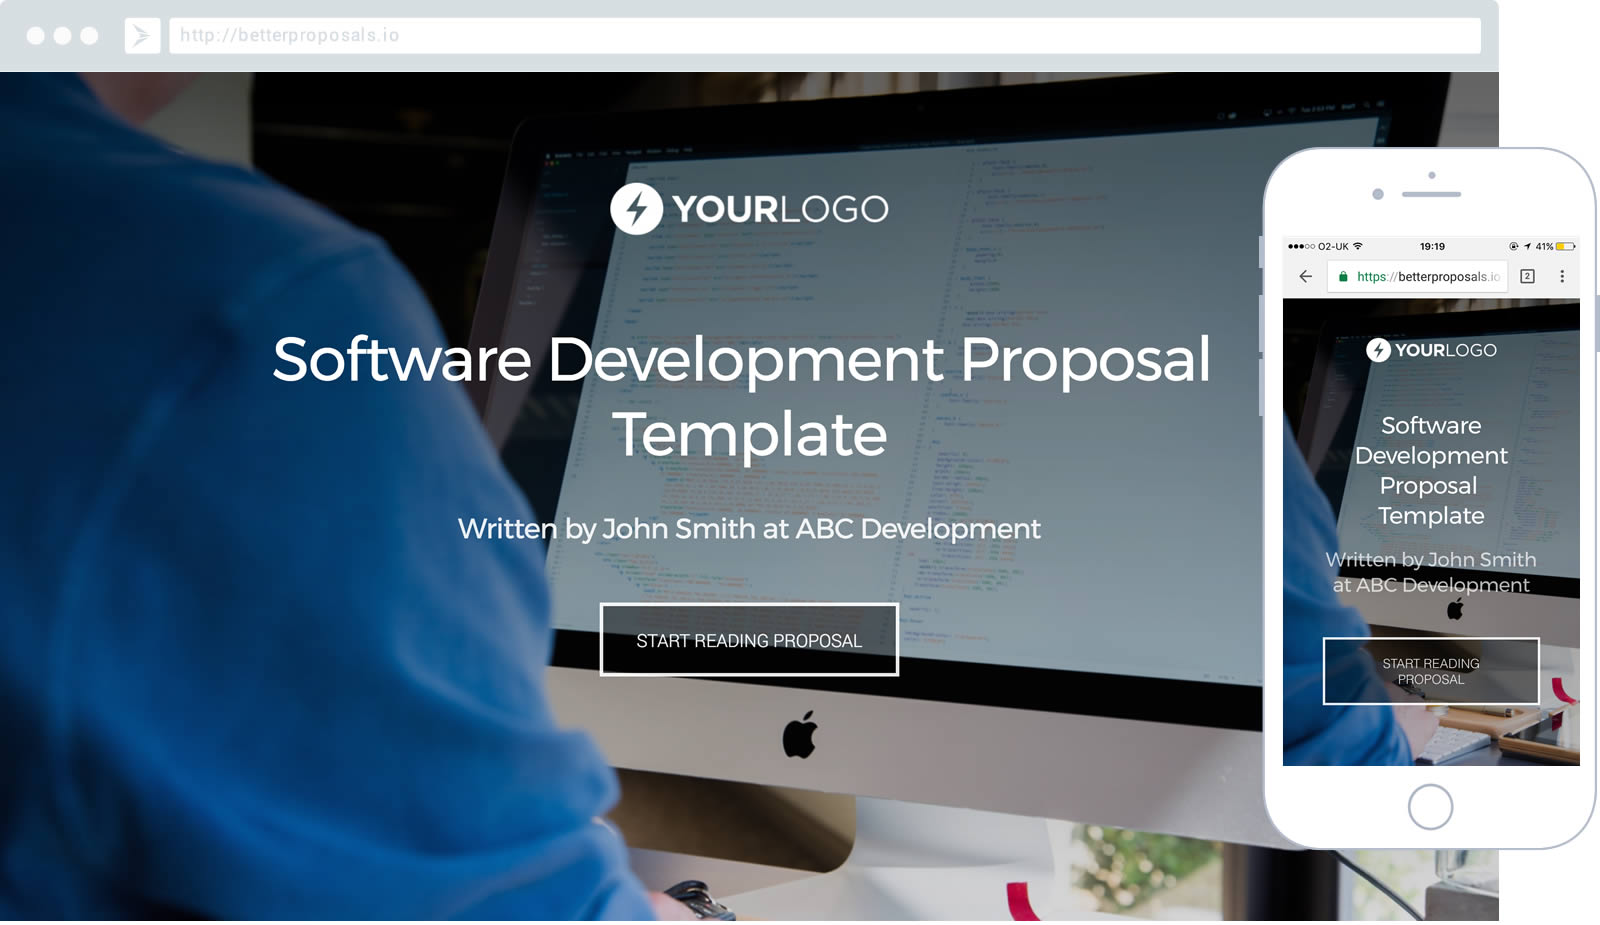 Superior 60+ Other Free Proposal Templates Just Like These Are Also Available Inside  Better Proposals. Software Development ...